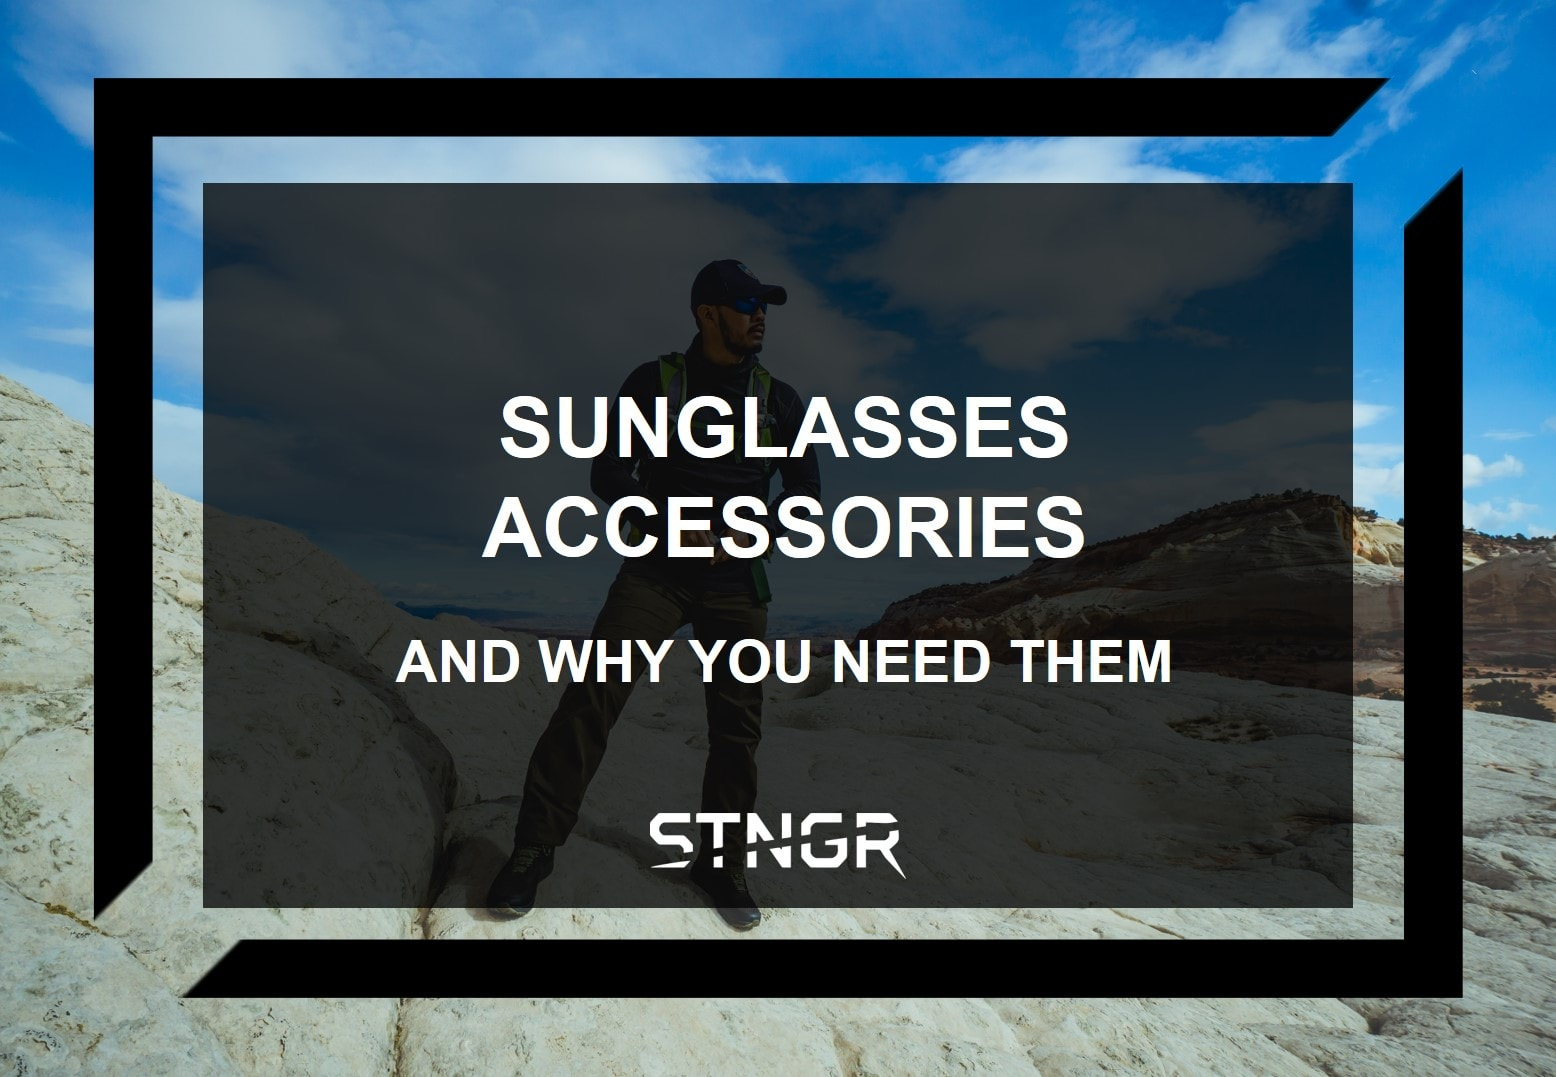 Sunglasses Accessories and Why You Need Them